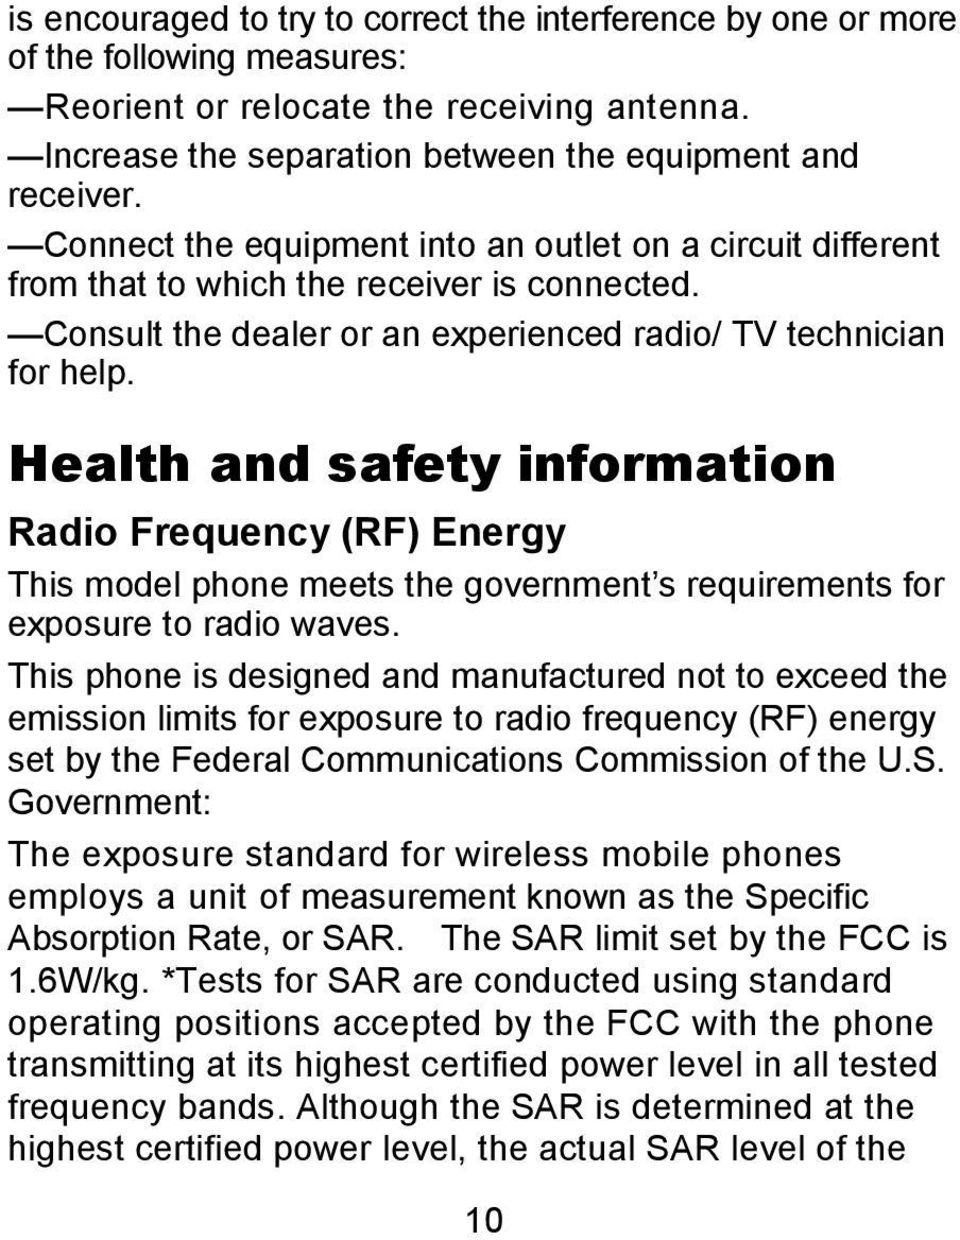 Health and safety information Radio Frequency (RF) Energy This model phone meets the government s requirements for exposure to radio waves.